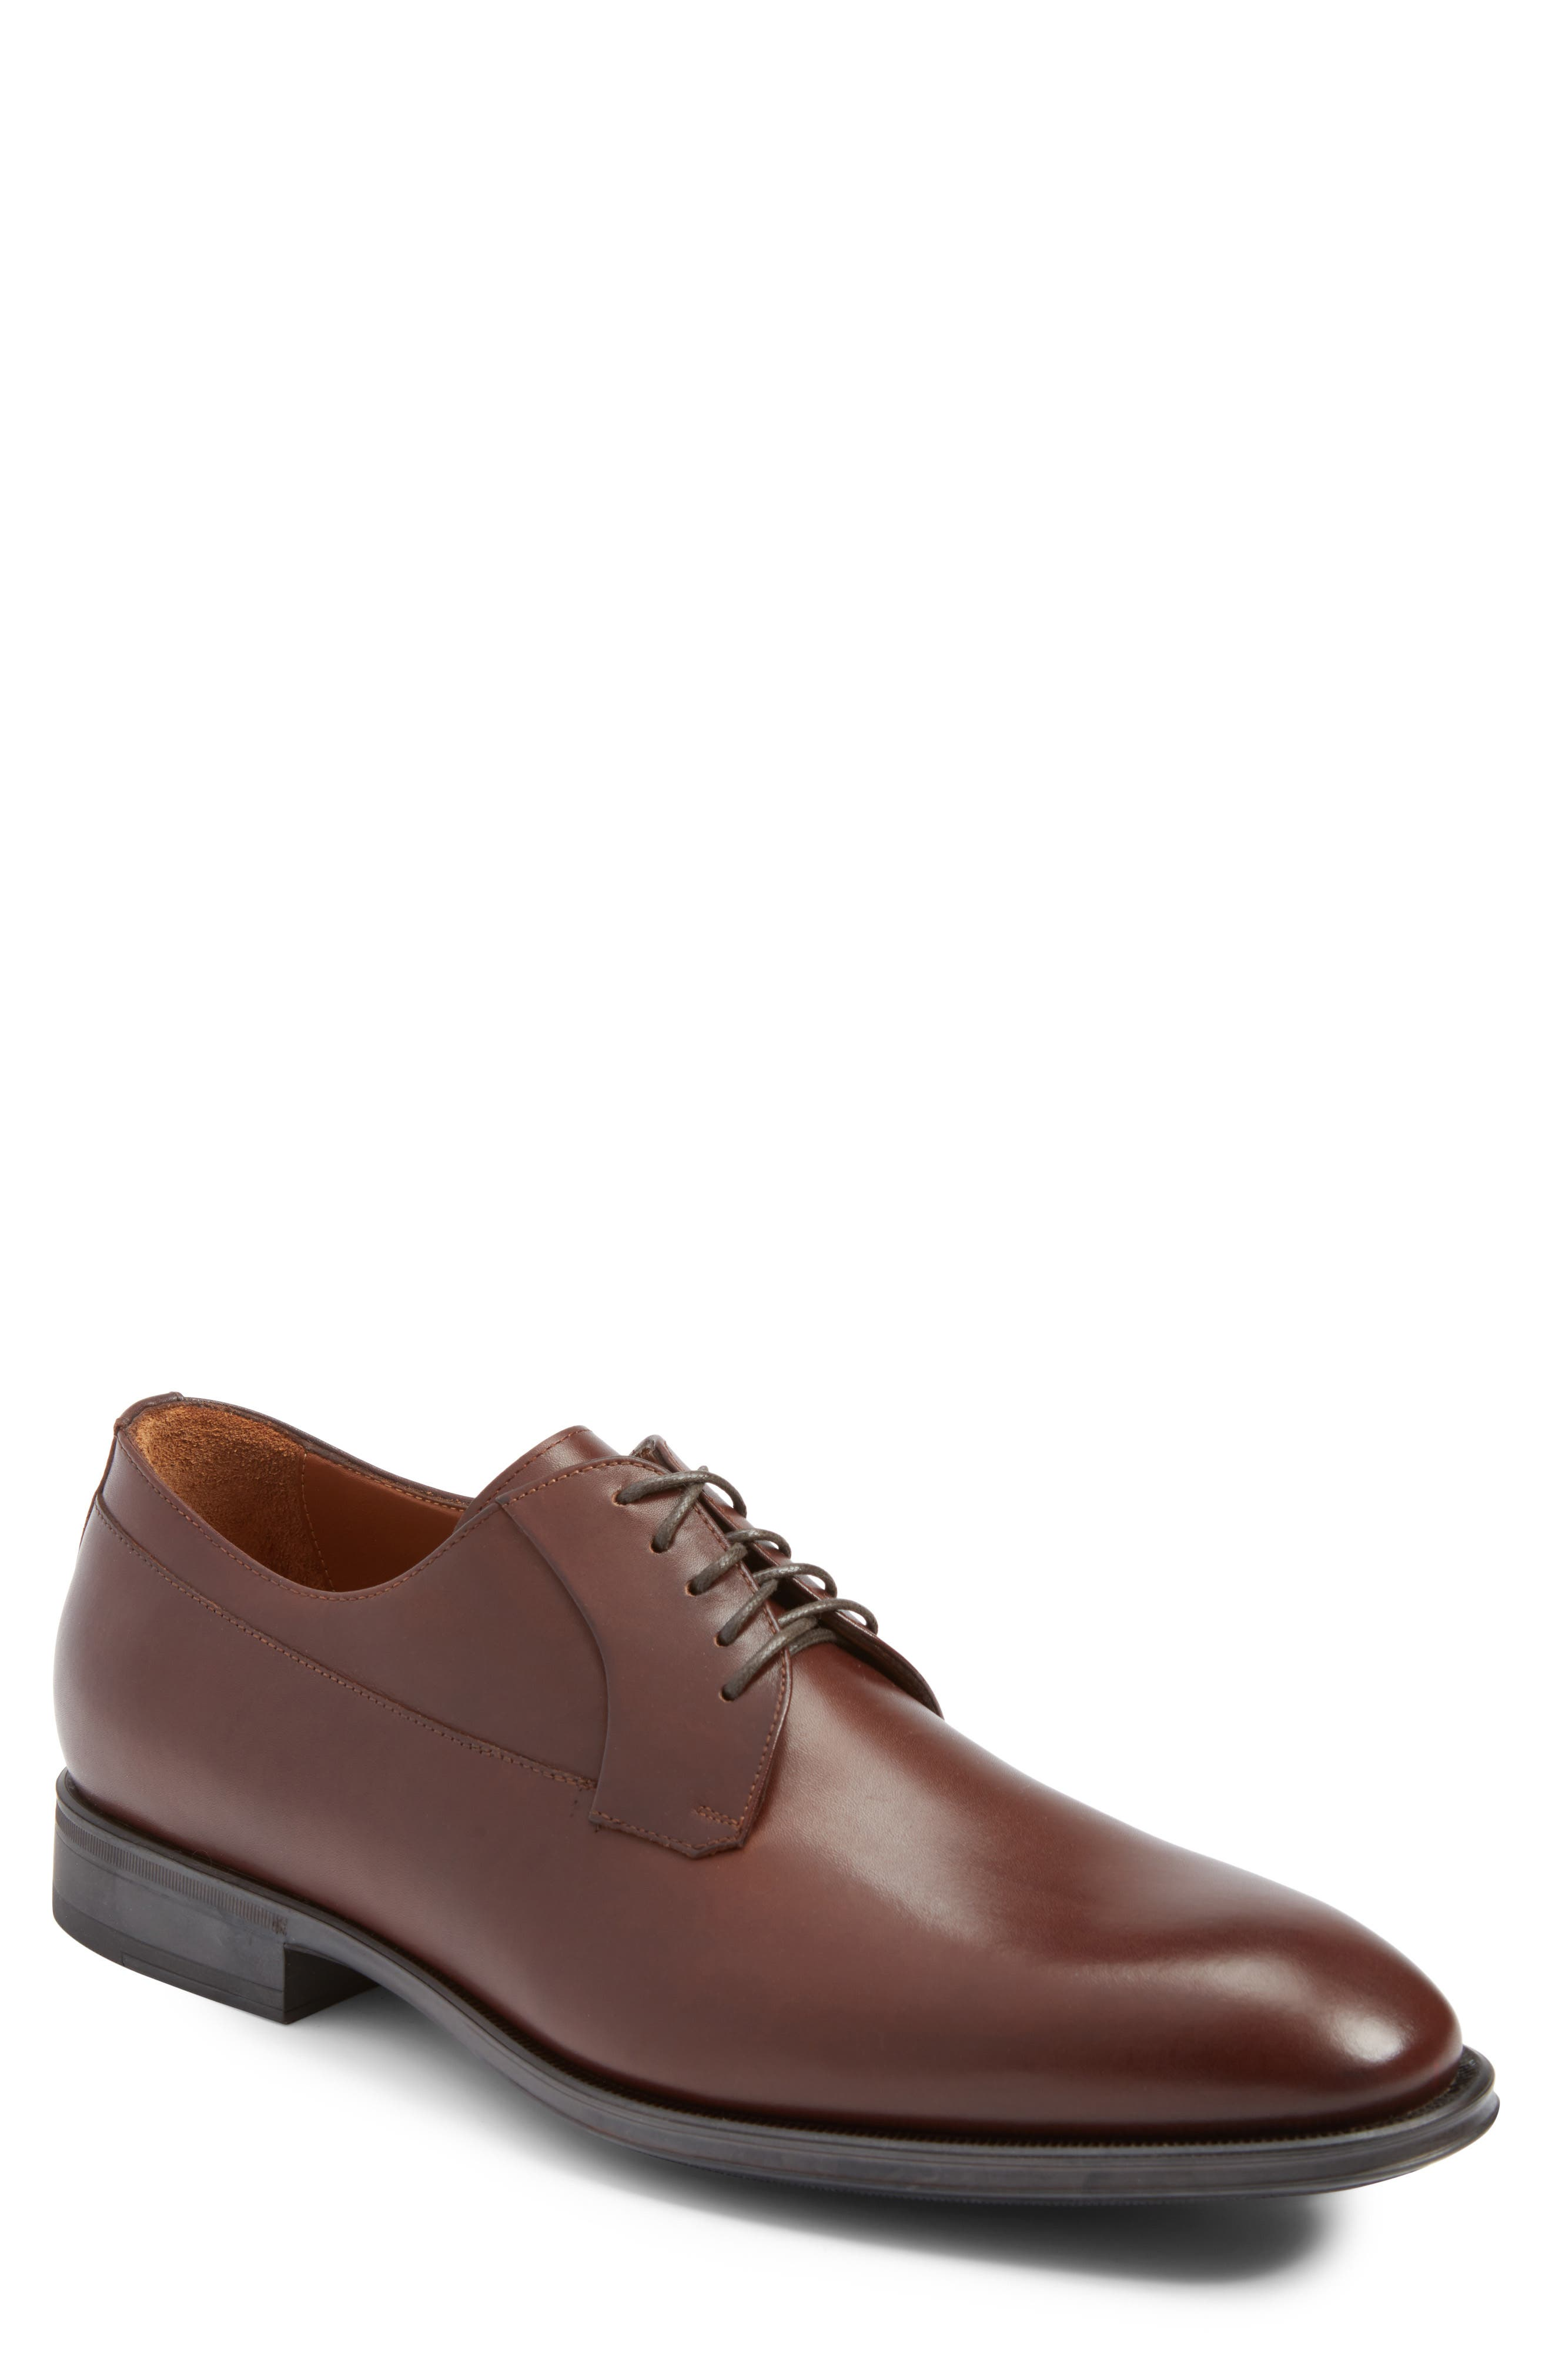 Aquatalia Decker Plain Toe Derby (Men)